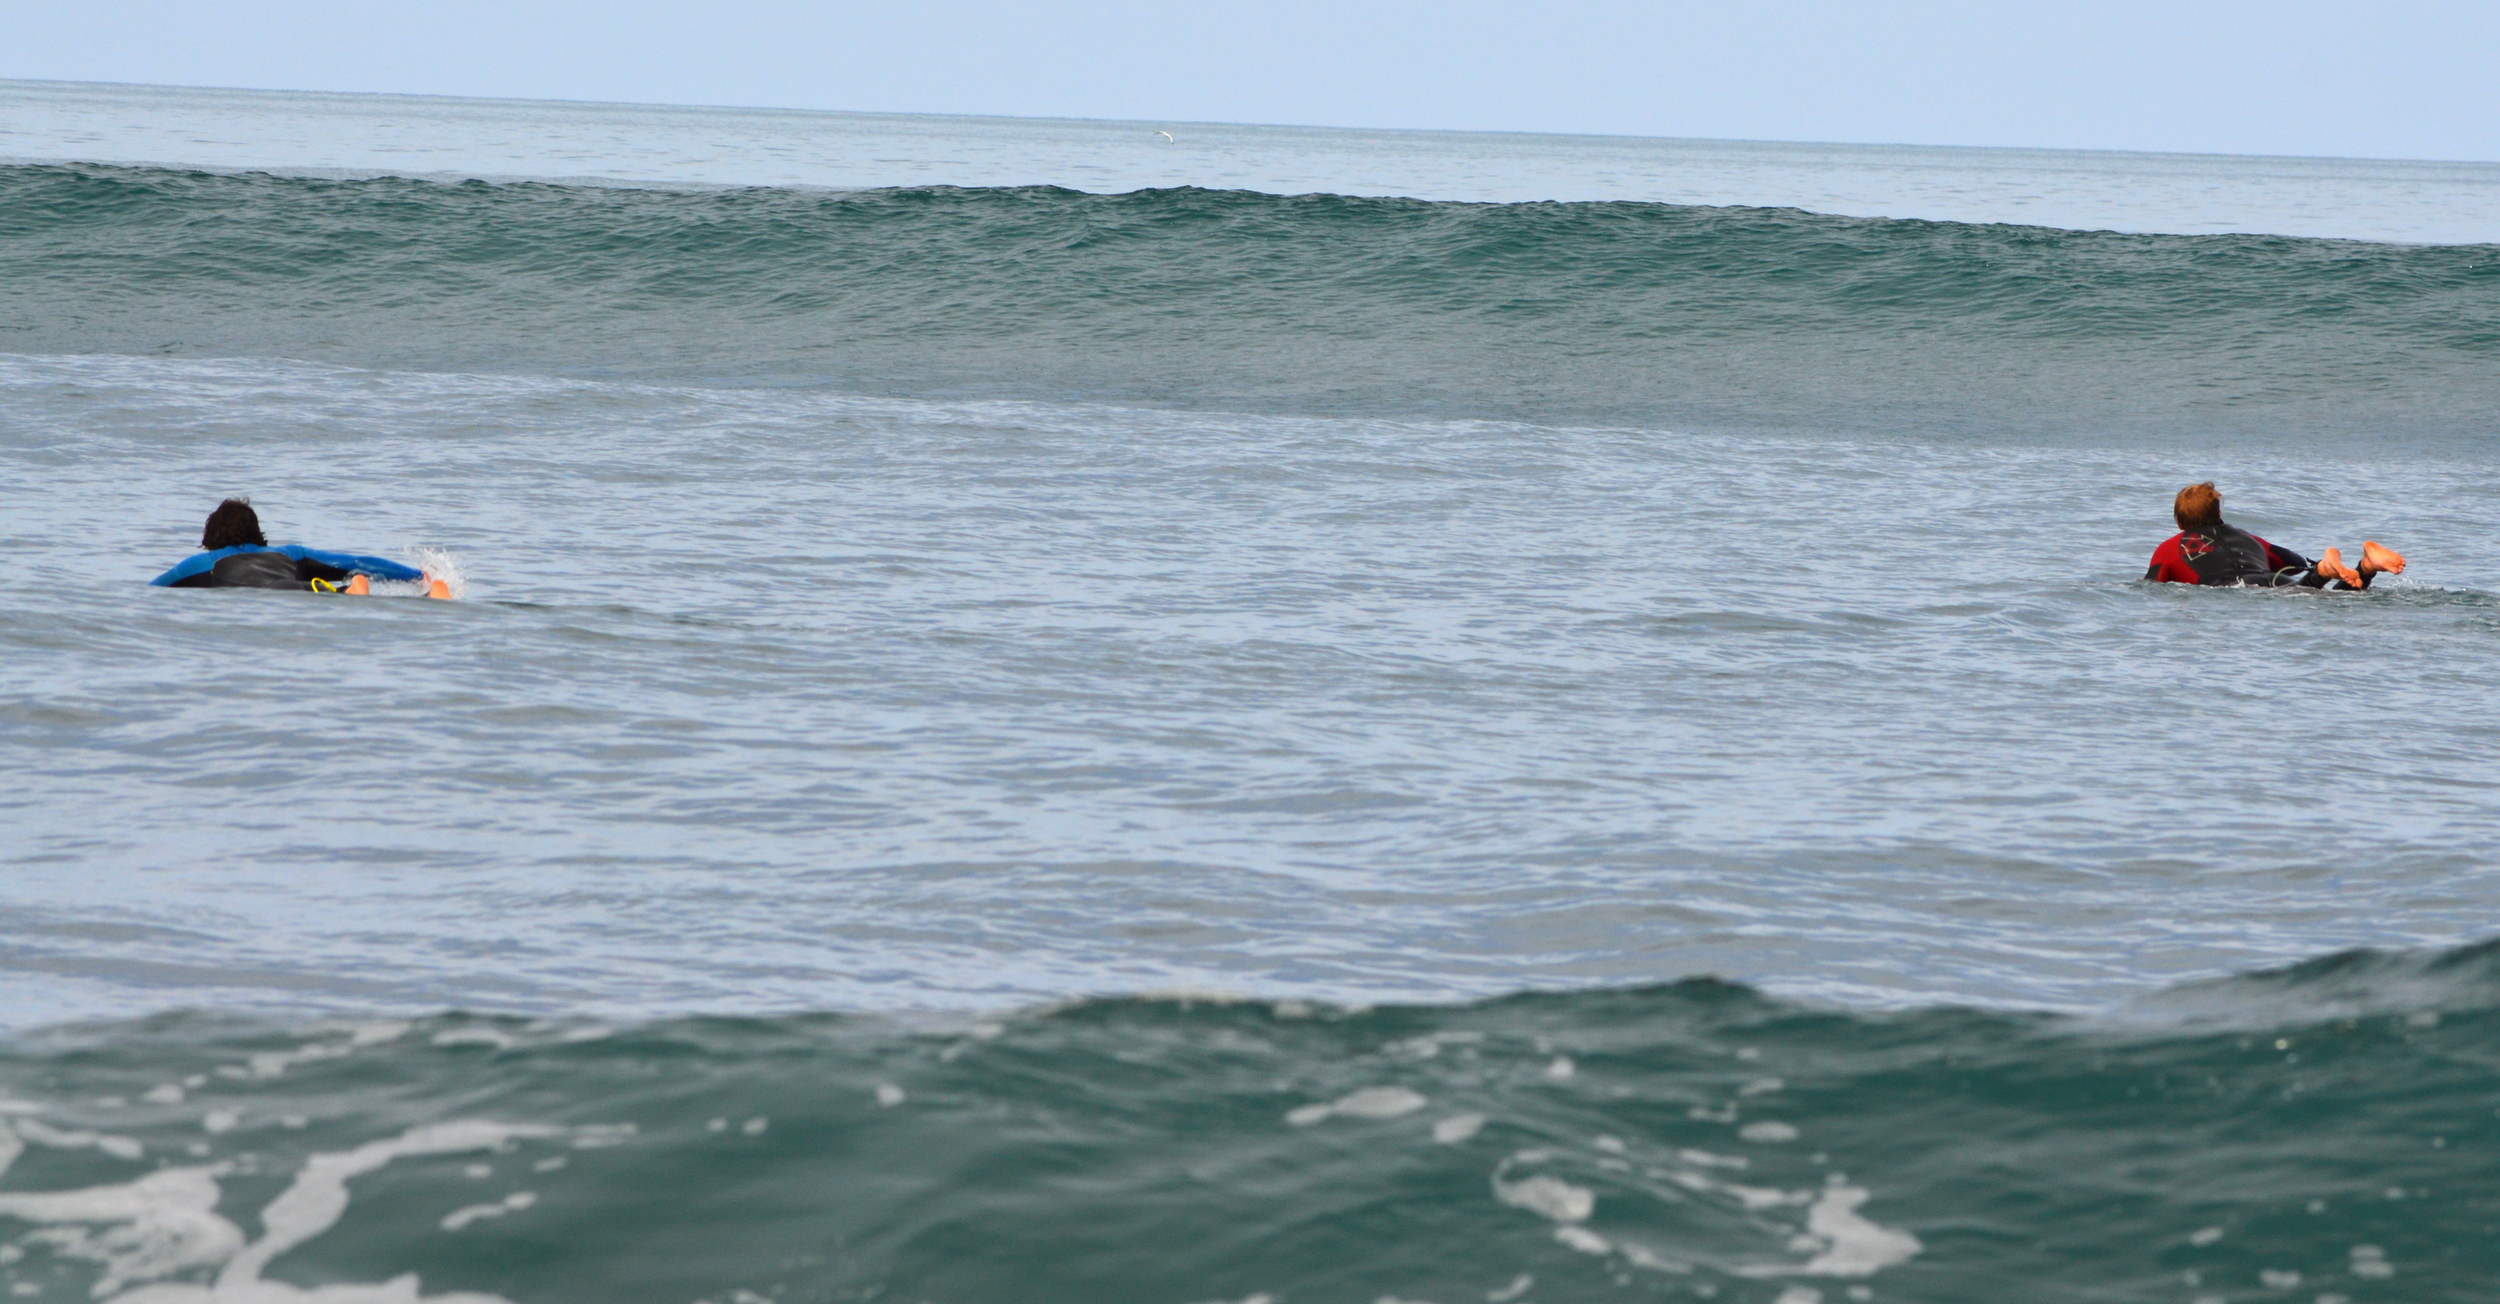 Paddling out into an empty lineup Photo@bossemarcus. Surfer left@crippoo